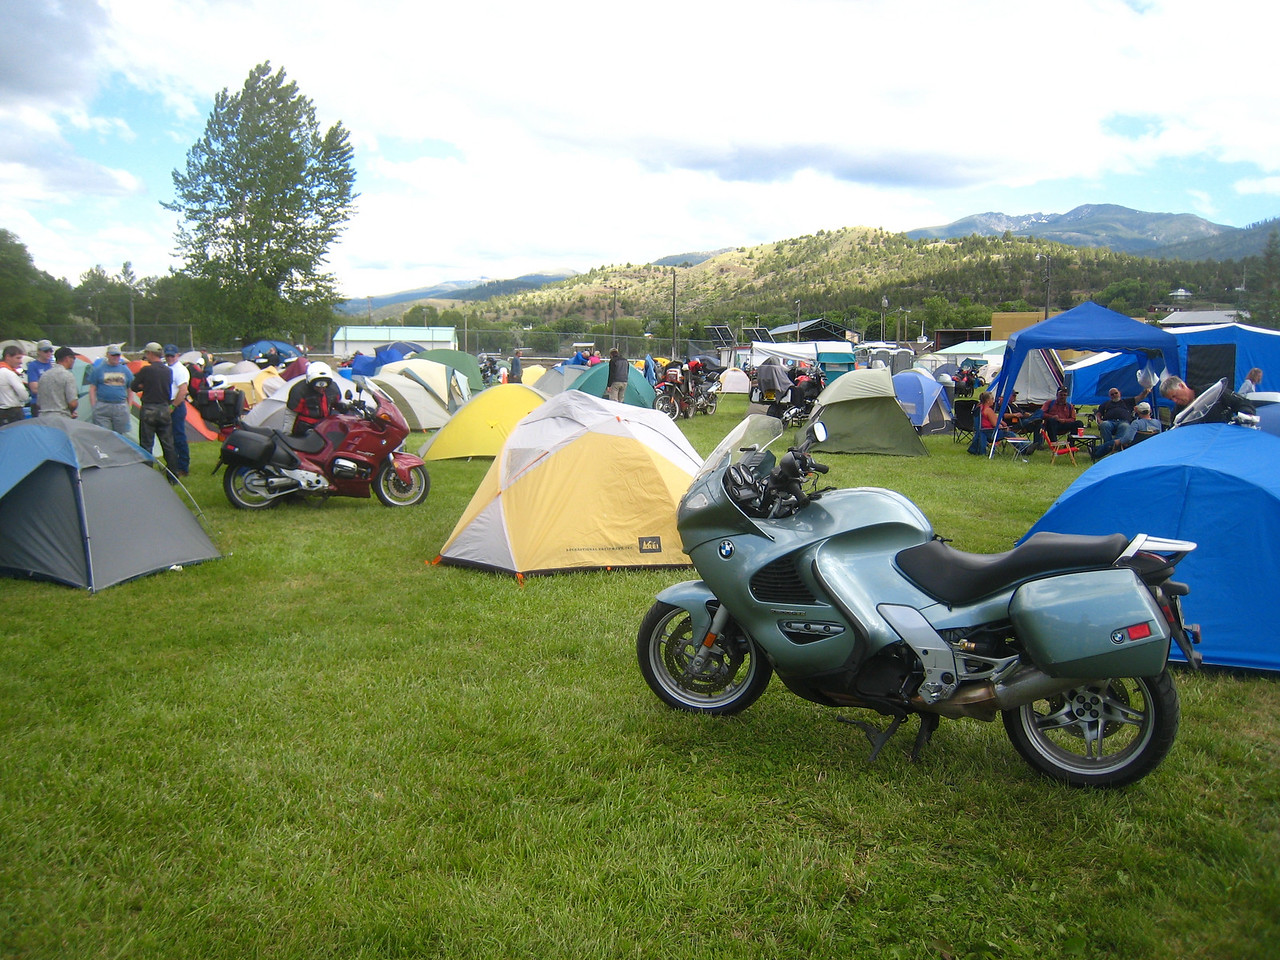 I catch a few sprinkles as I get into John Day.  I find a spot and pitch the tent.  There are about 700 riders here.